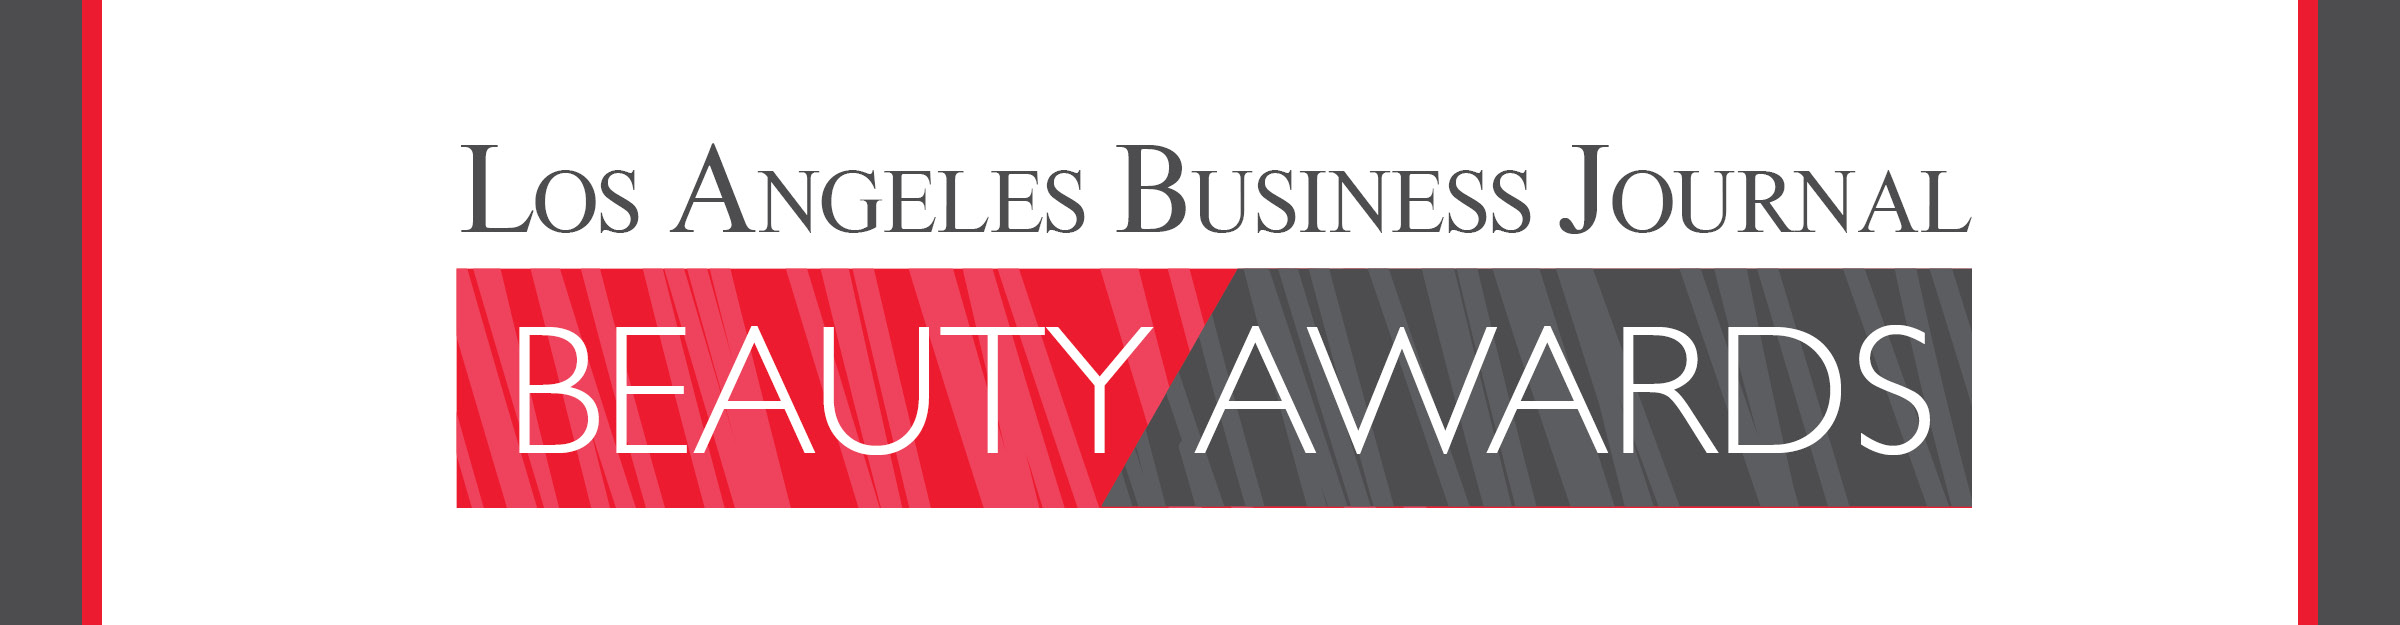 Los Angeles Business Journal Beauty Awards Event Banner